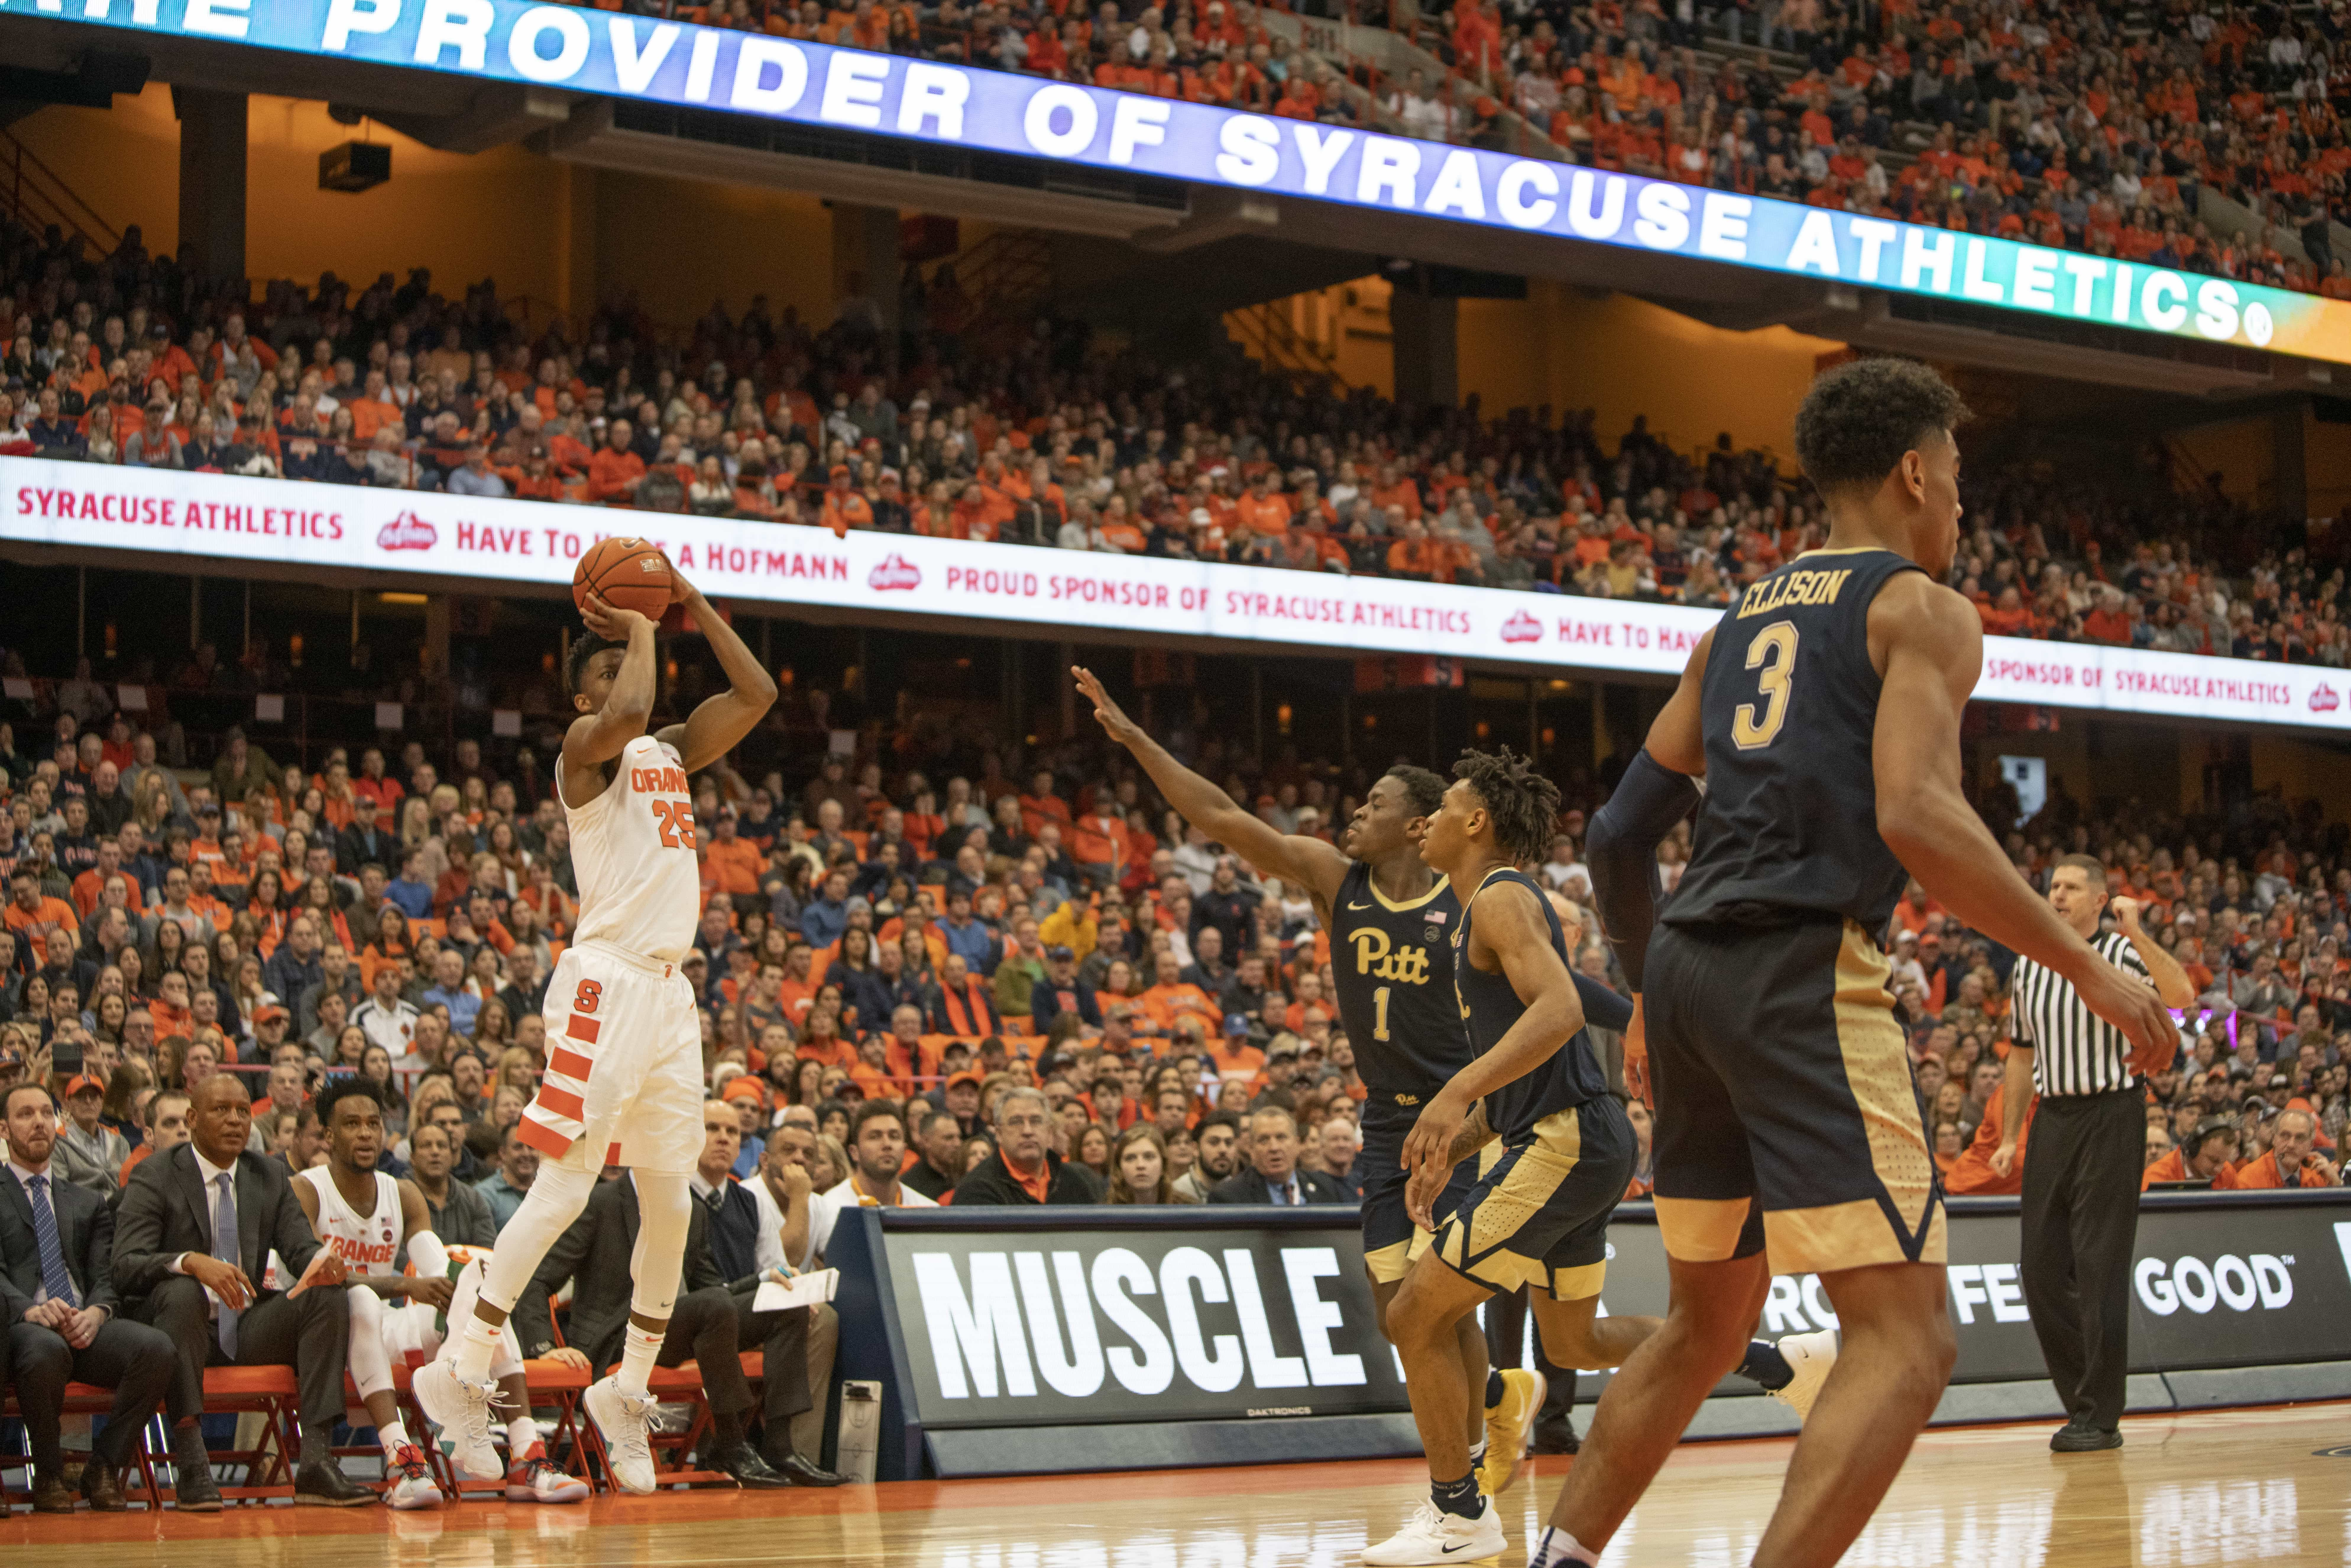 SU vs Pitt Basketball